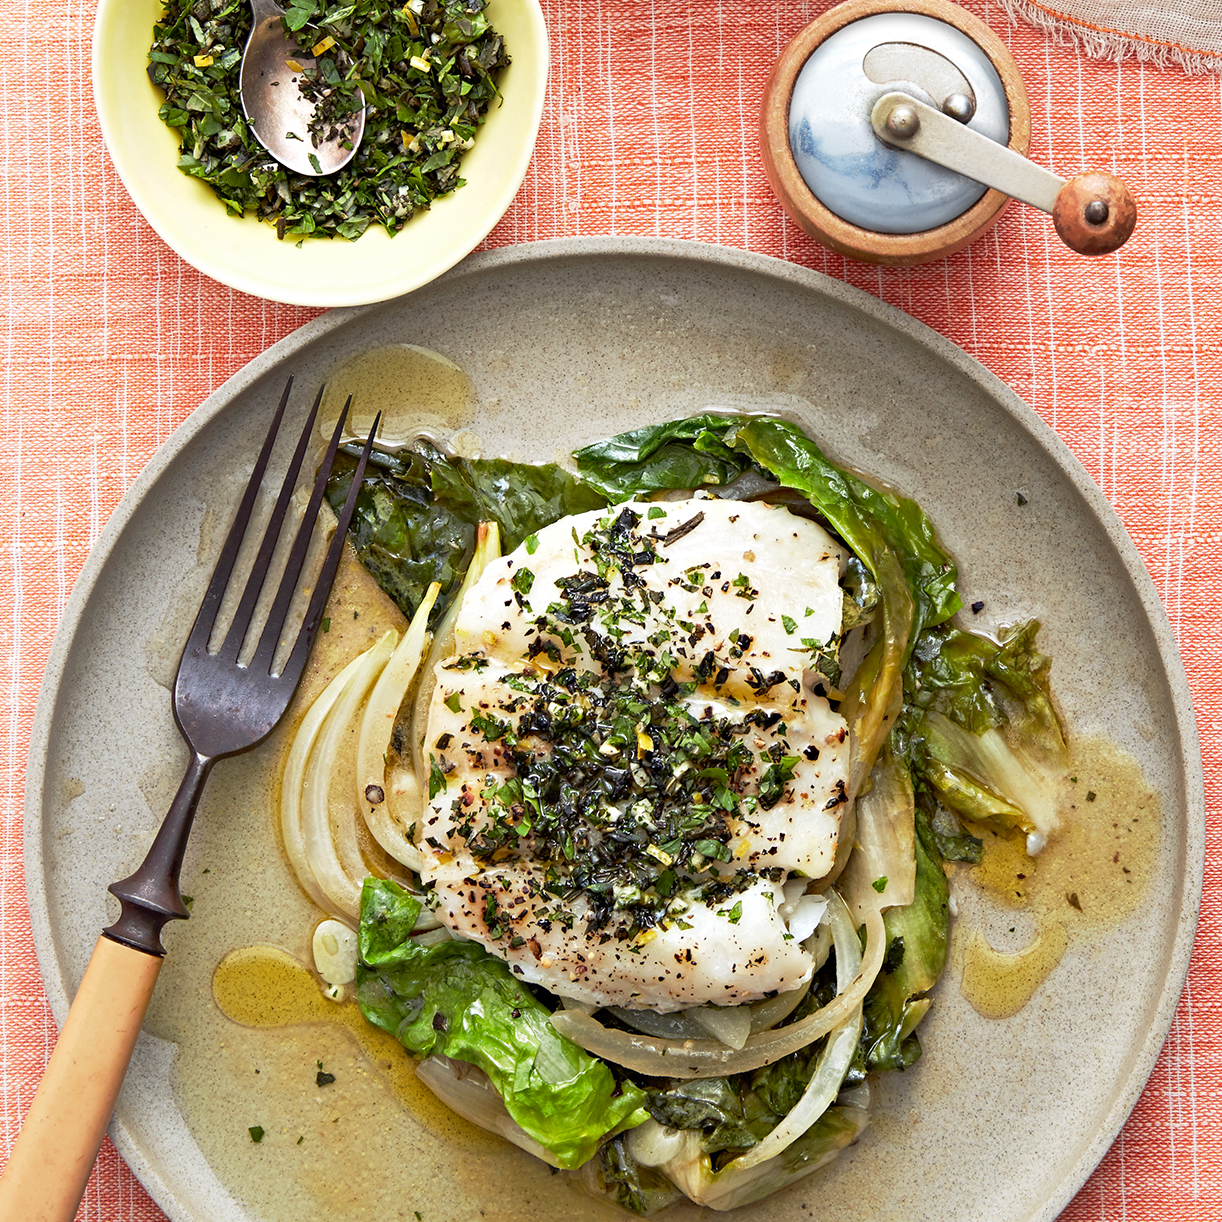 Baked Fish with Escarole, Wine & Herbs